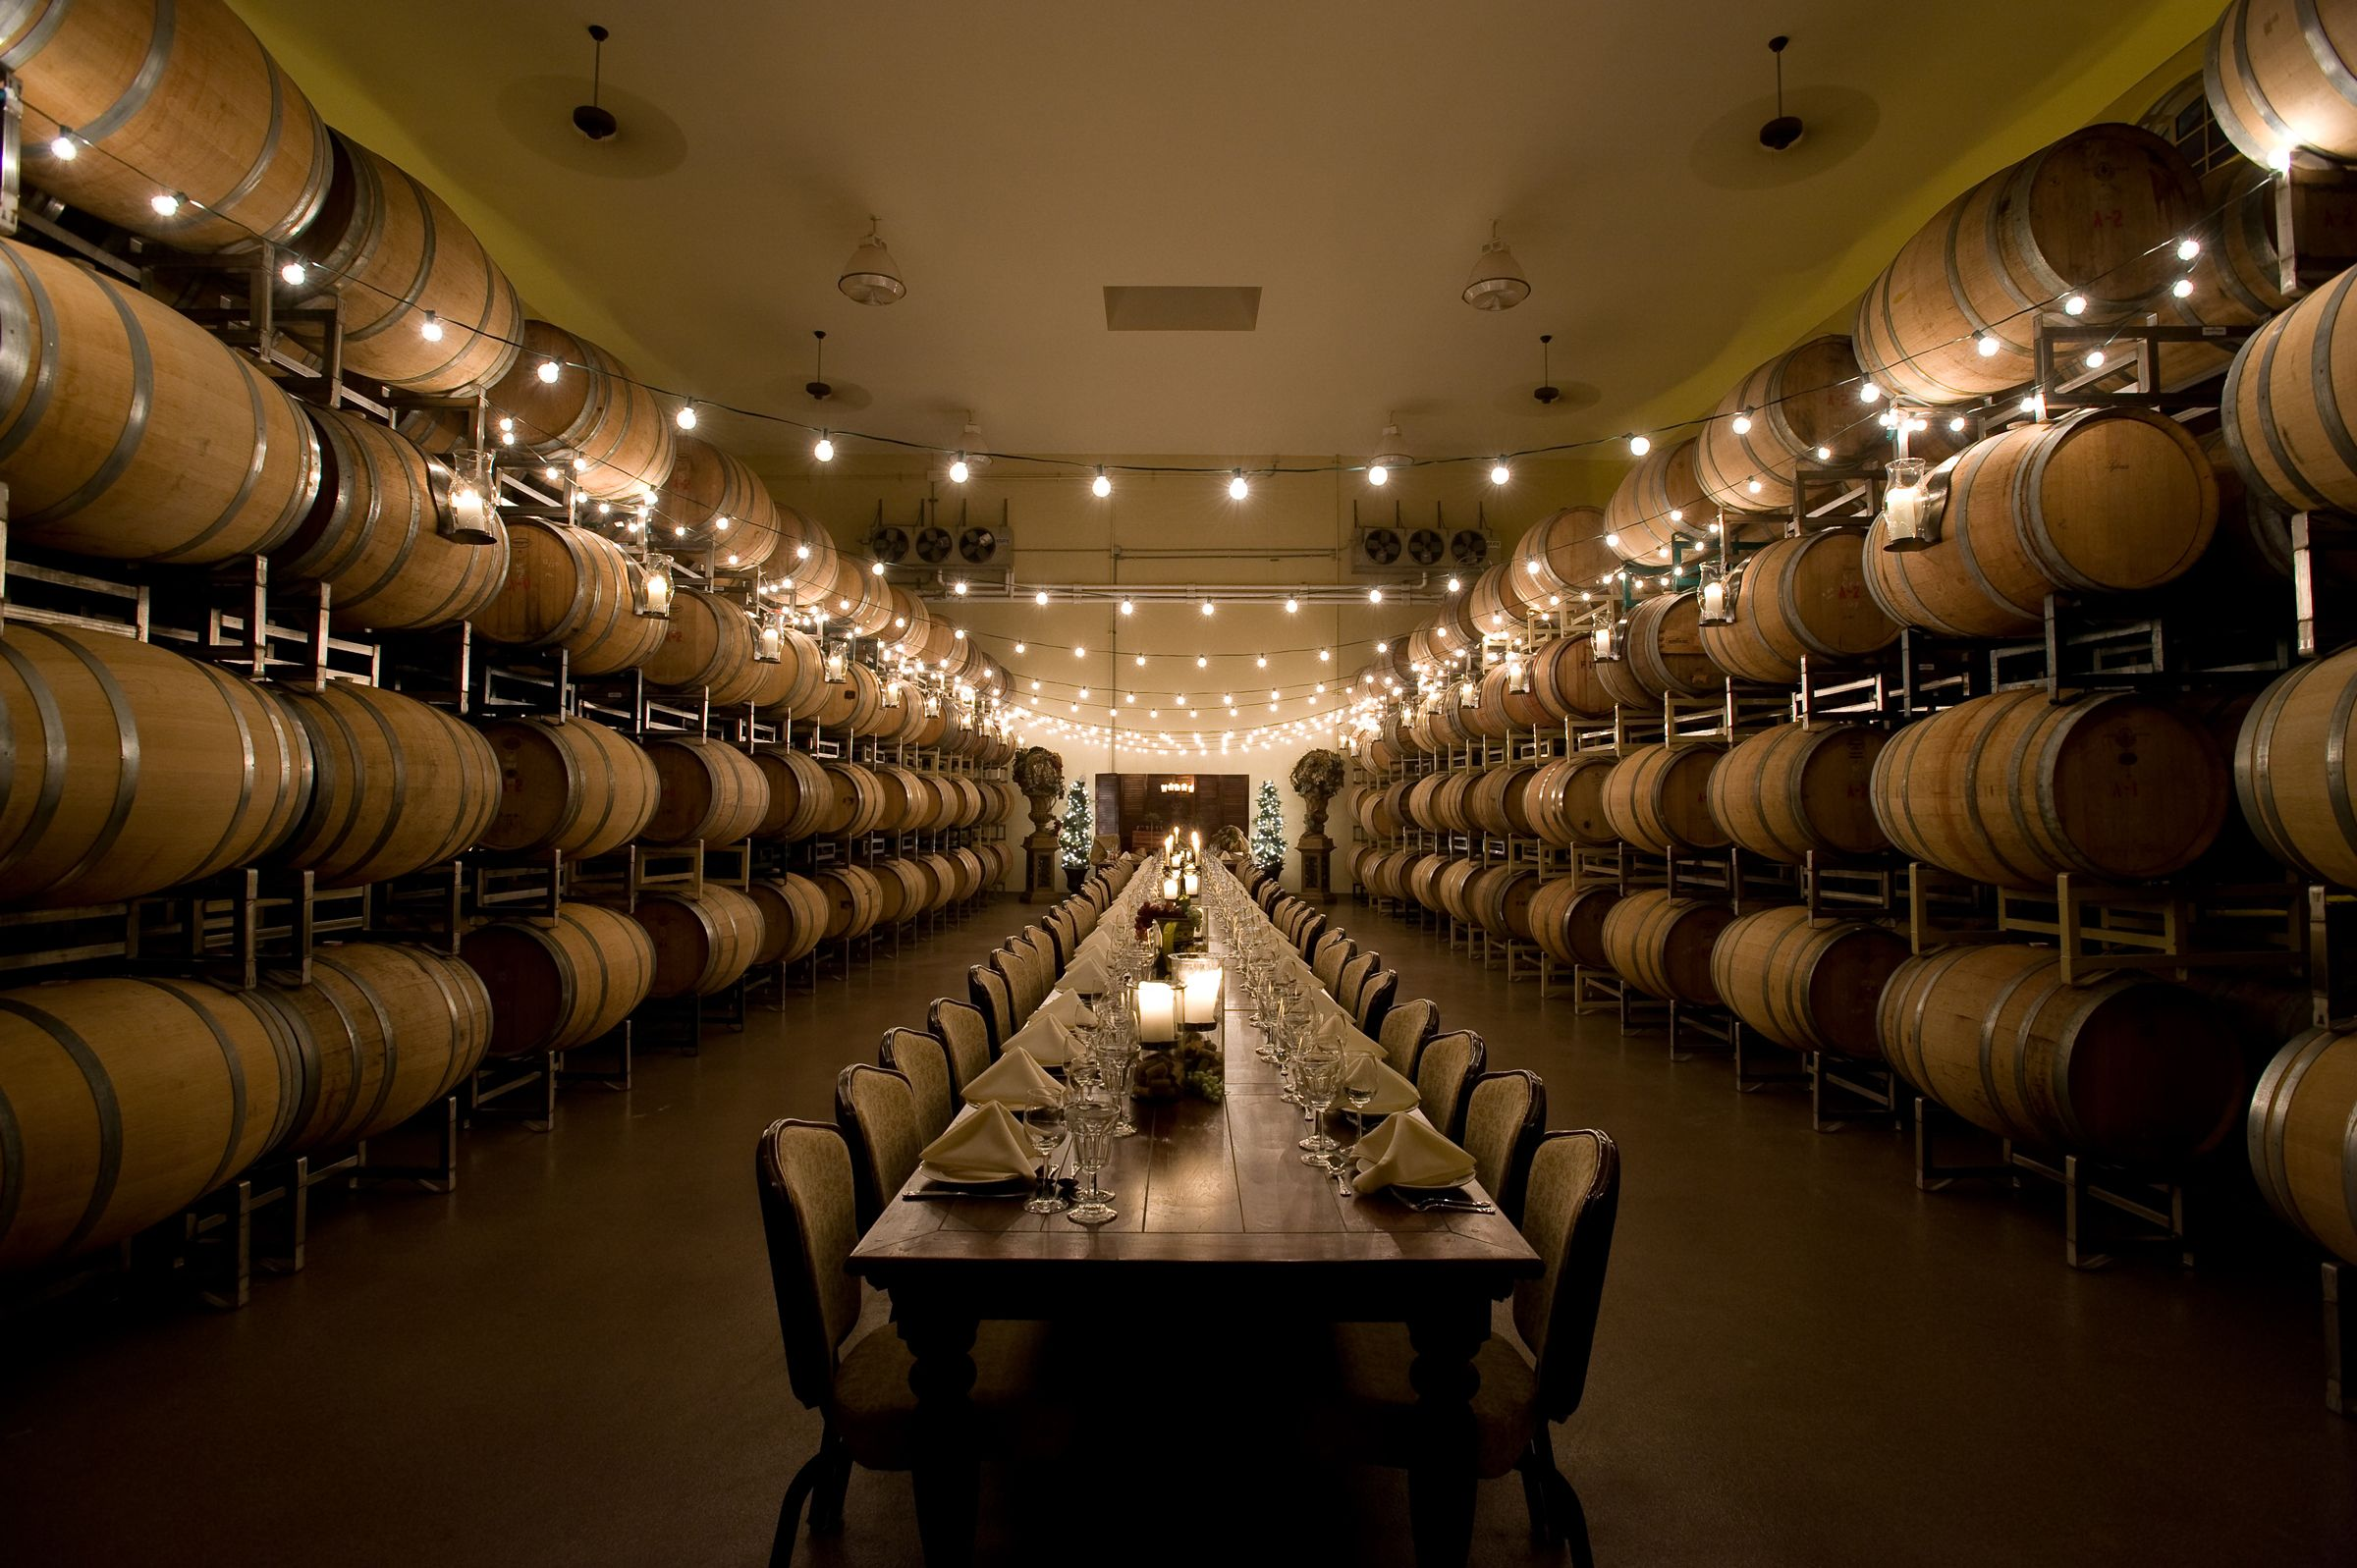 Childress Barrel Room For More Information About Our